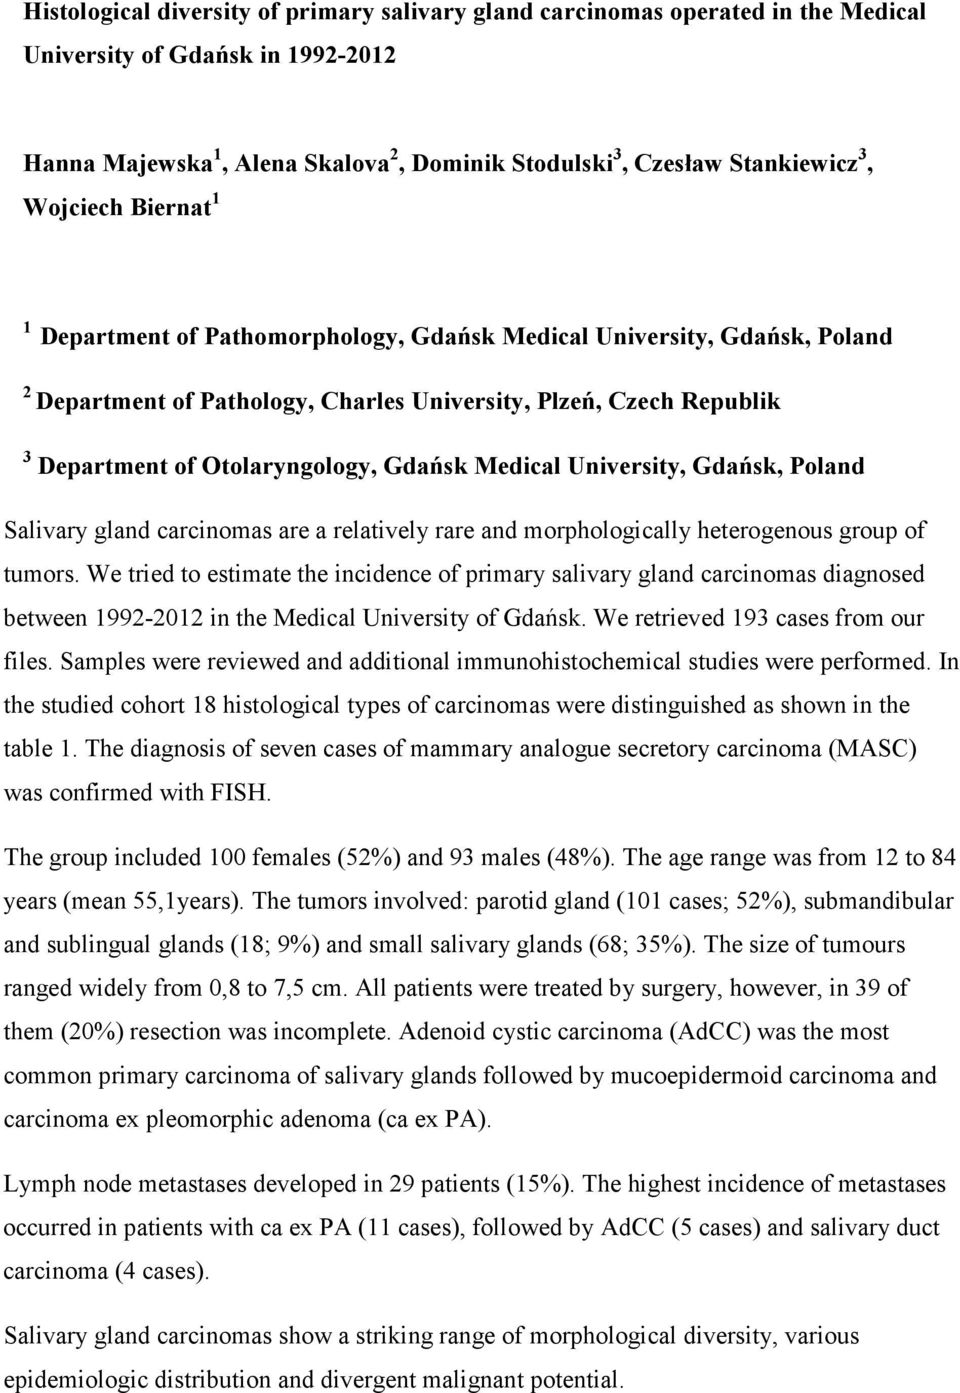 Gdańsk, Poland Salivary gland s are a relatively rare and morphologically heterogenous group of tumors.